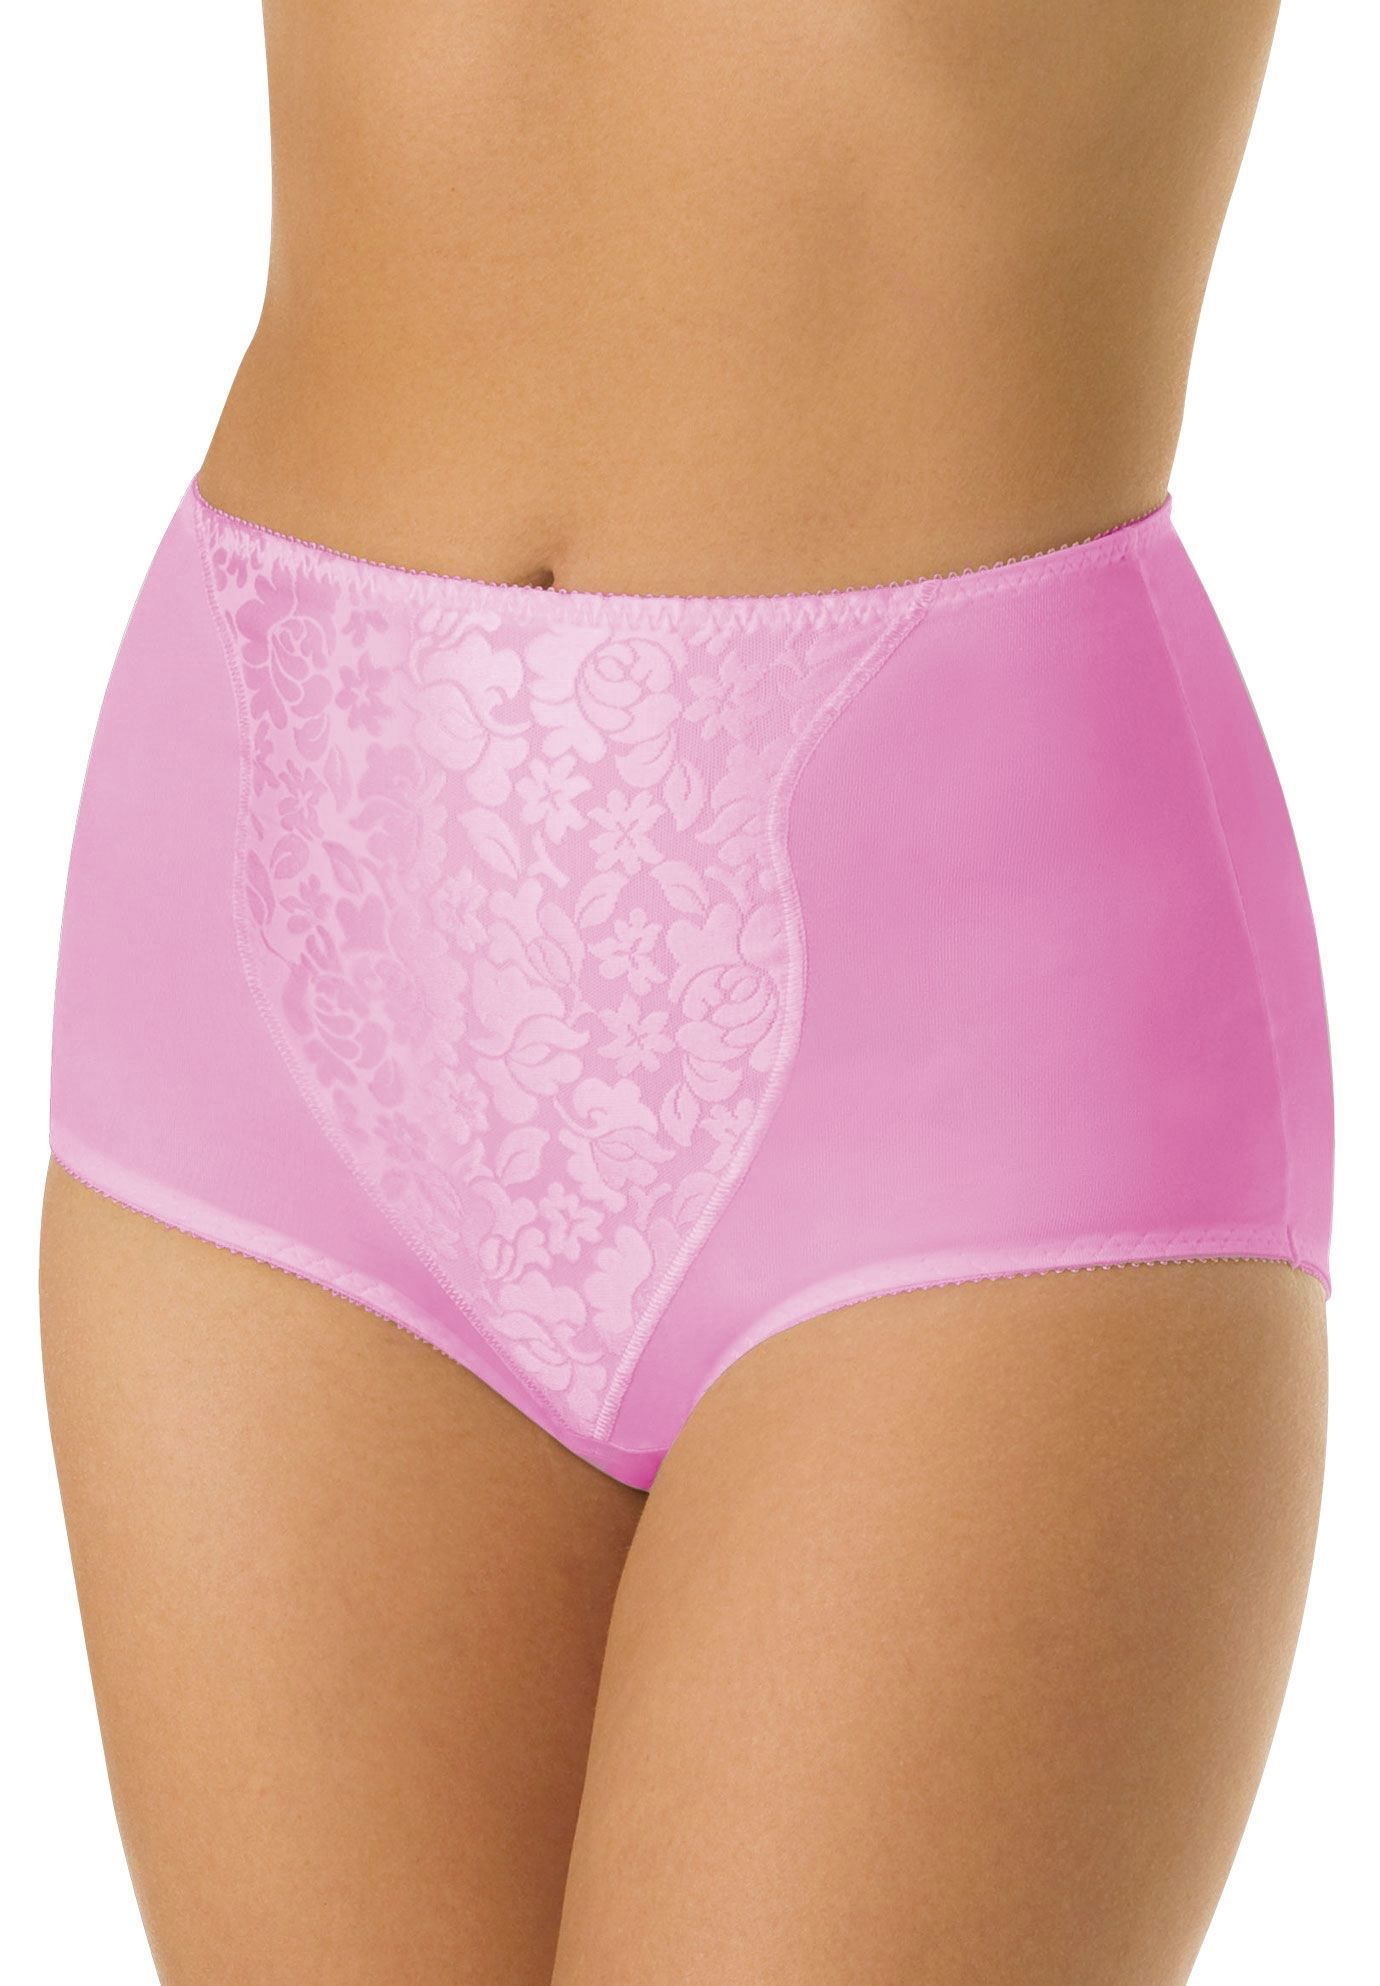 f247daeb471 Double support light control brief 2 pack by Bali - Women s Plus Size  Clothing